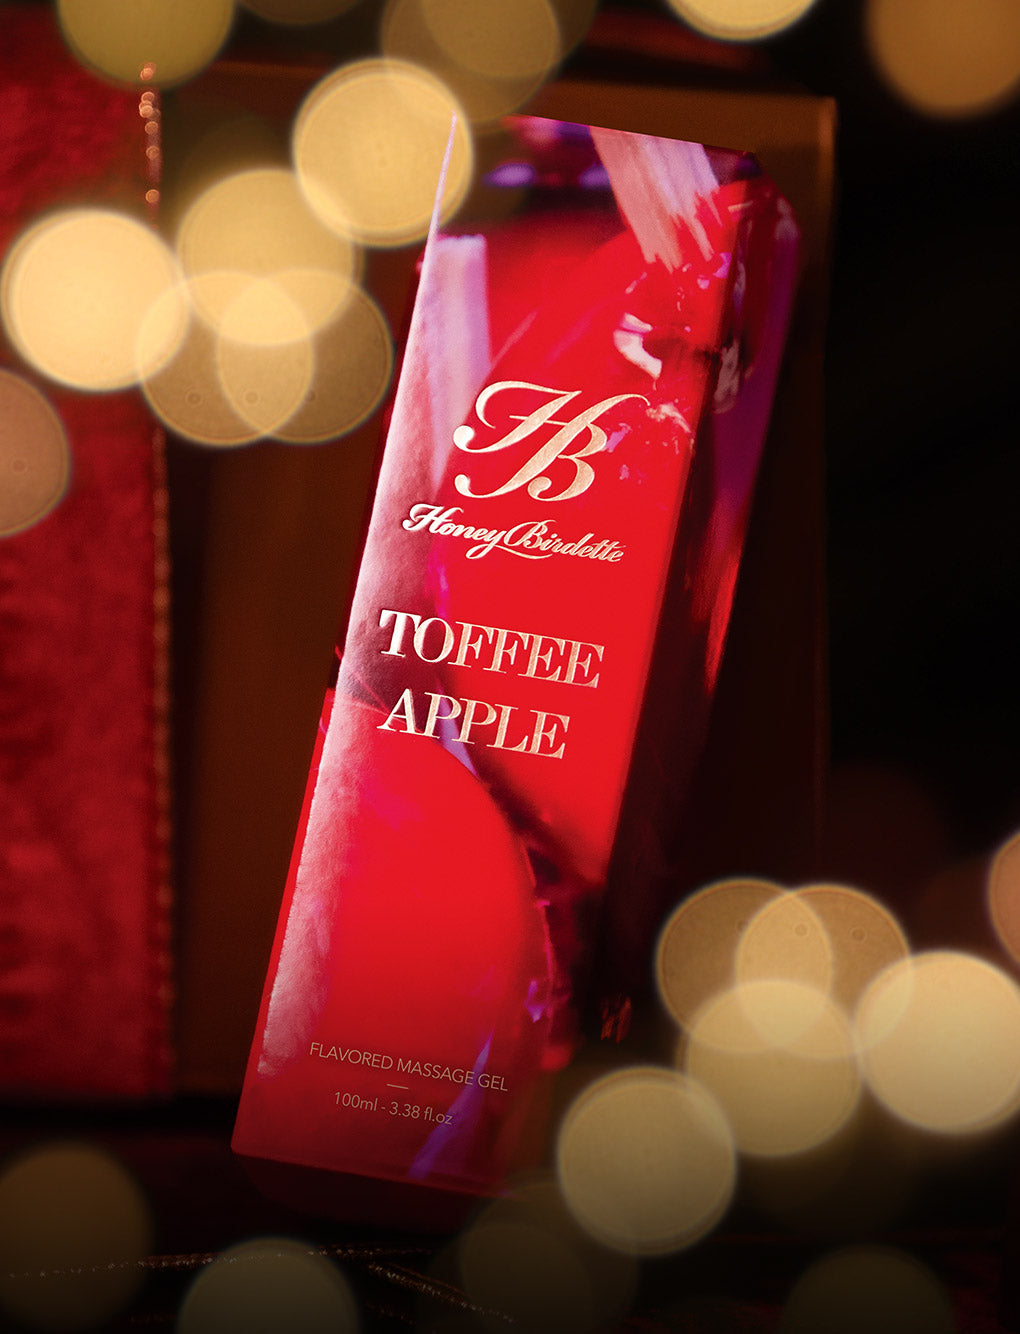 Toffee Apple Massage Gel